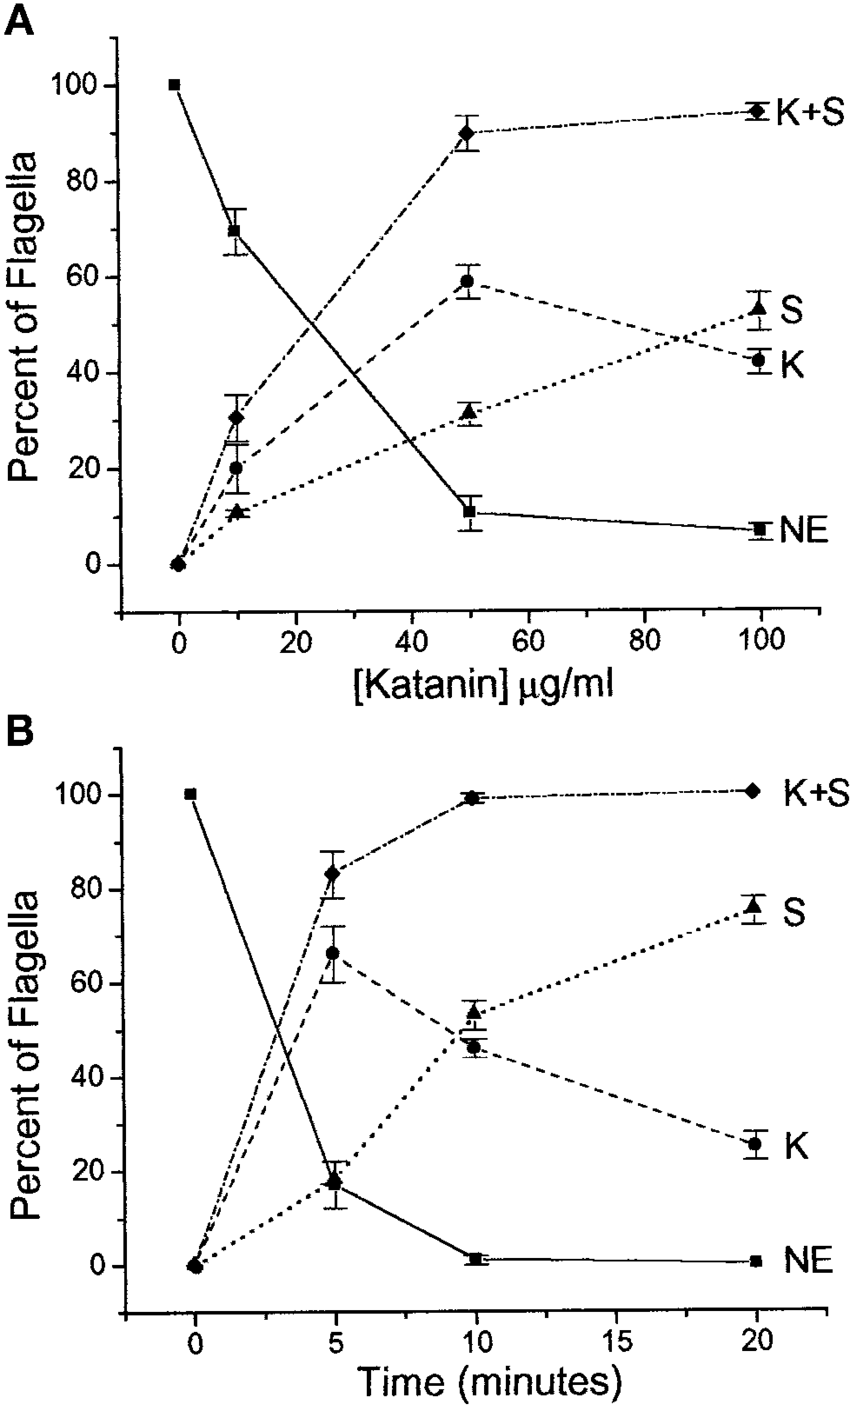 hight resolution of katanin mediated breakage of chlamydomonas flagella is both dose and time dependent a